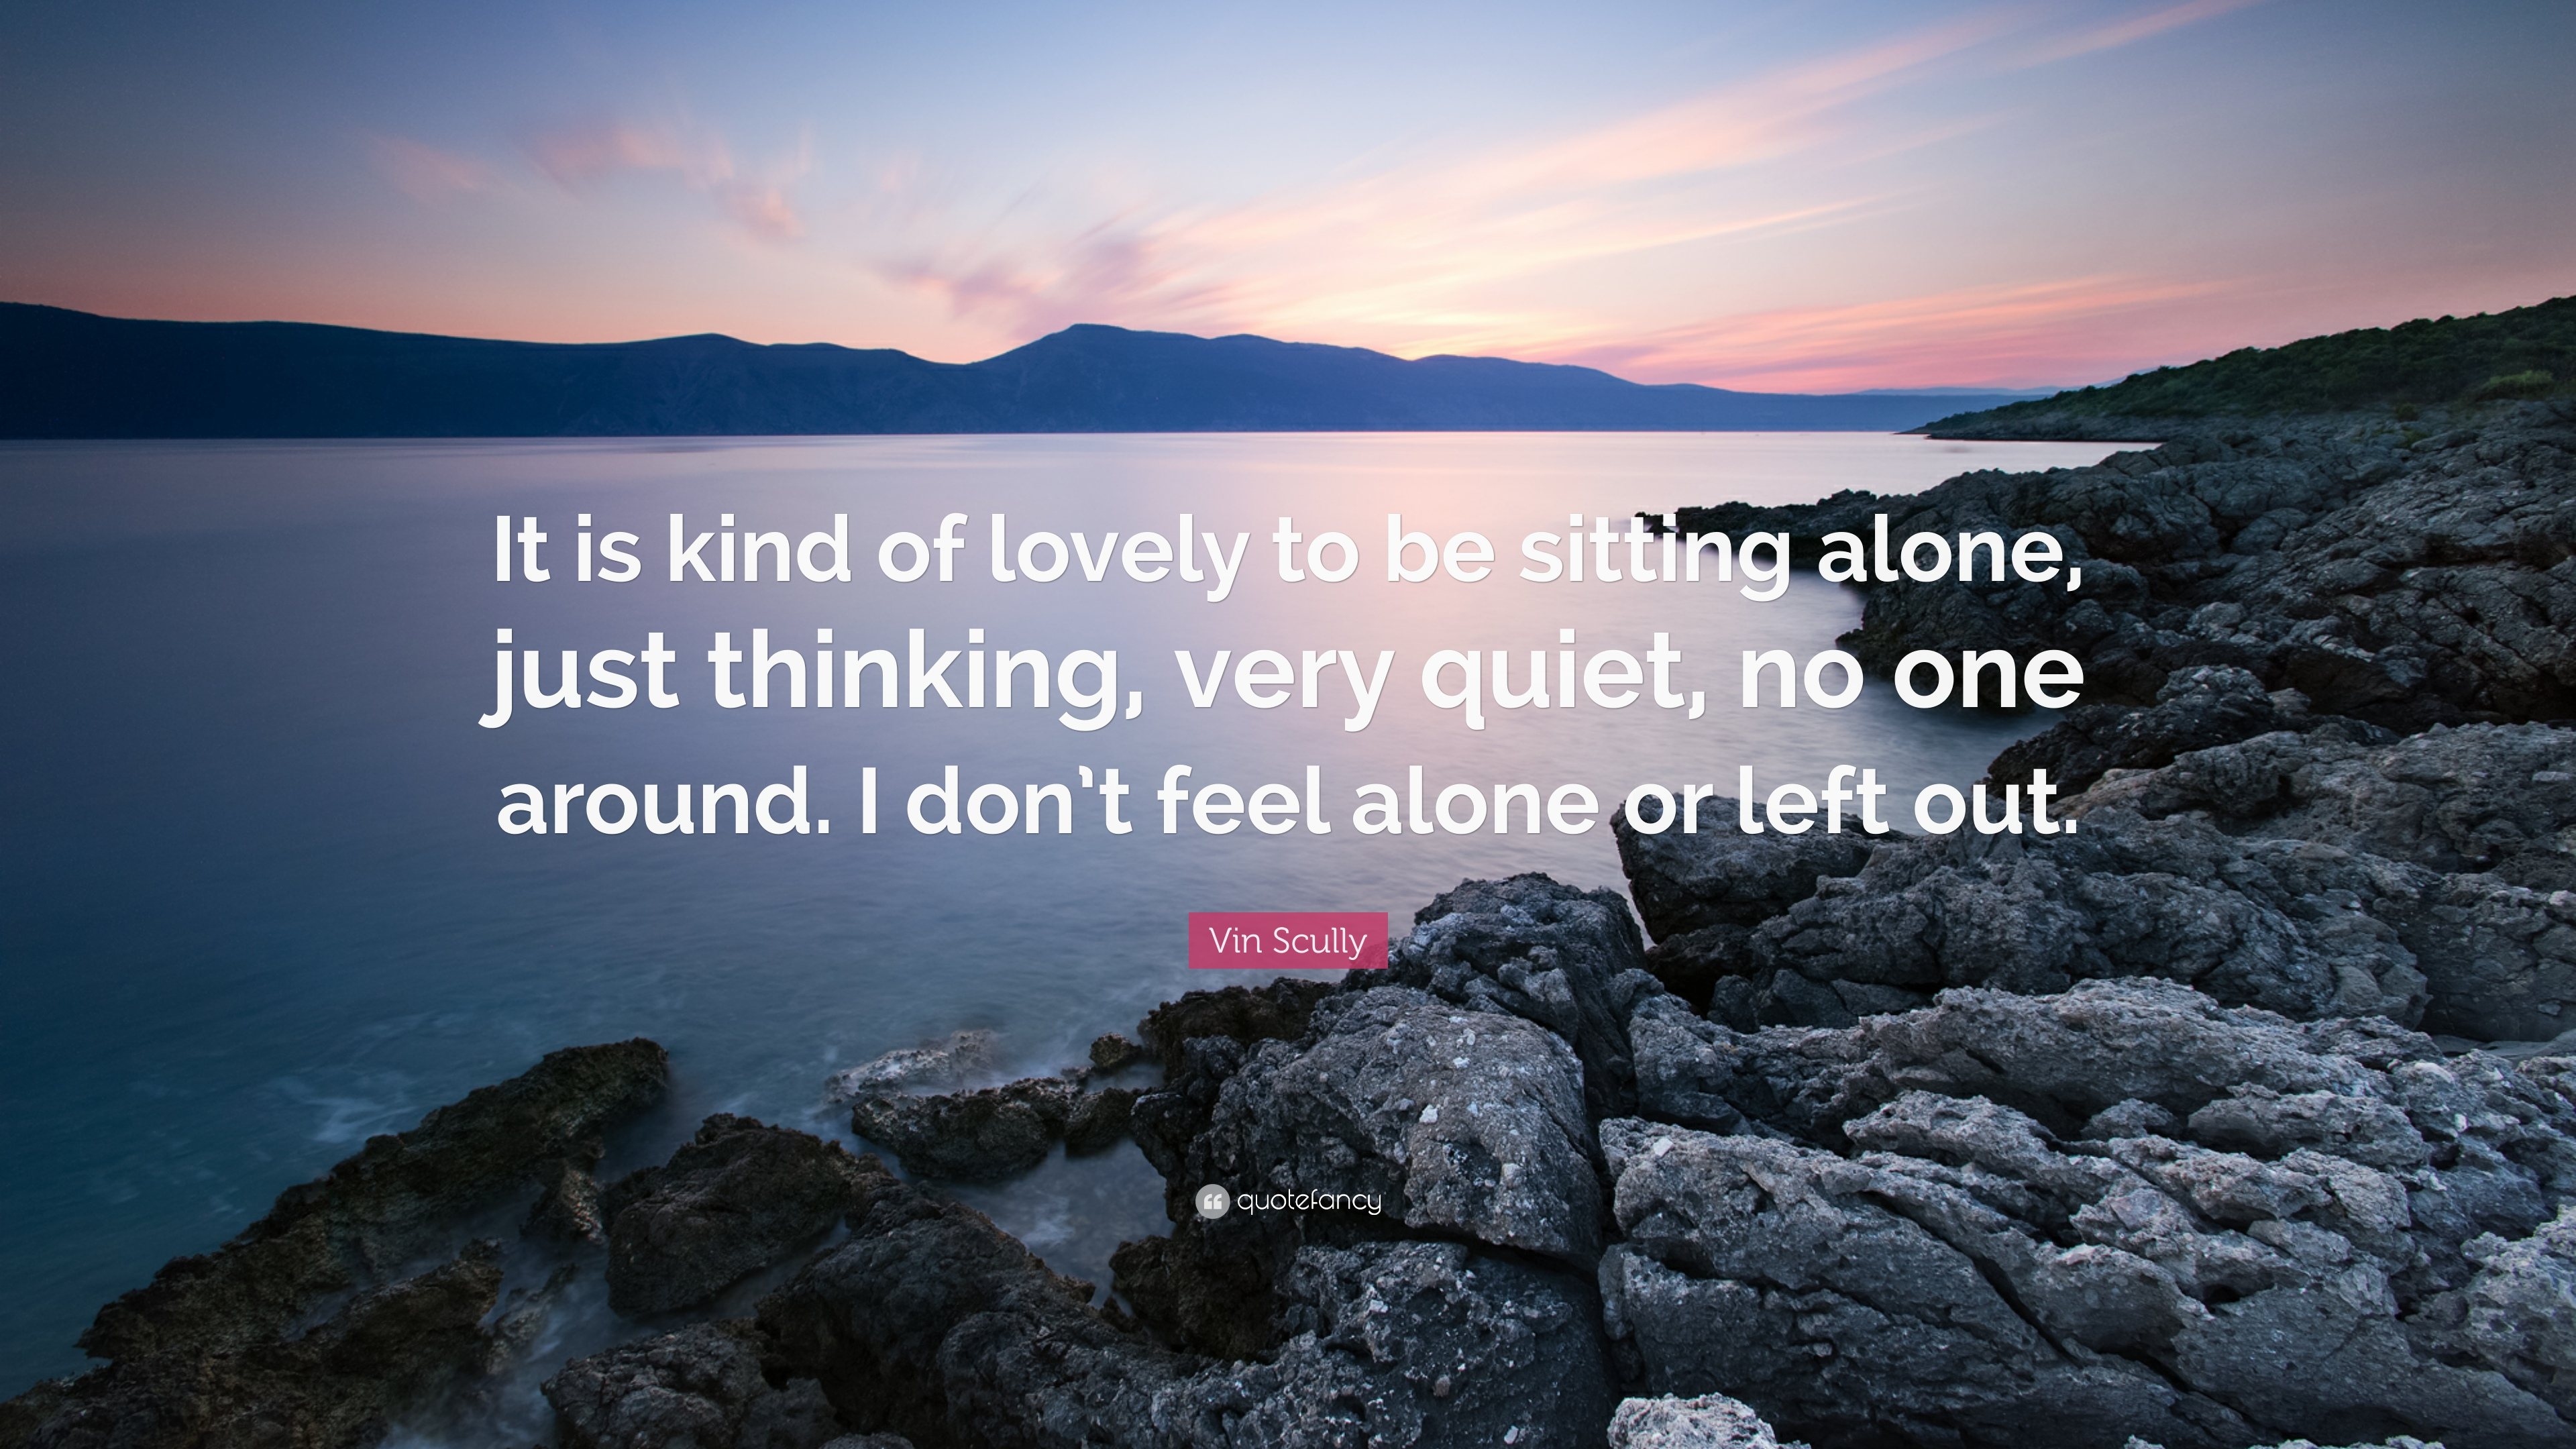 vin scully quote it is kind of lovely to be sitting alone just